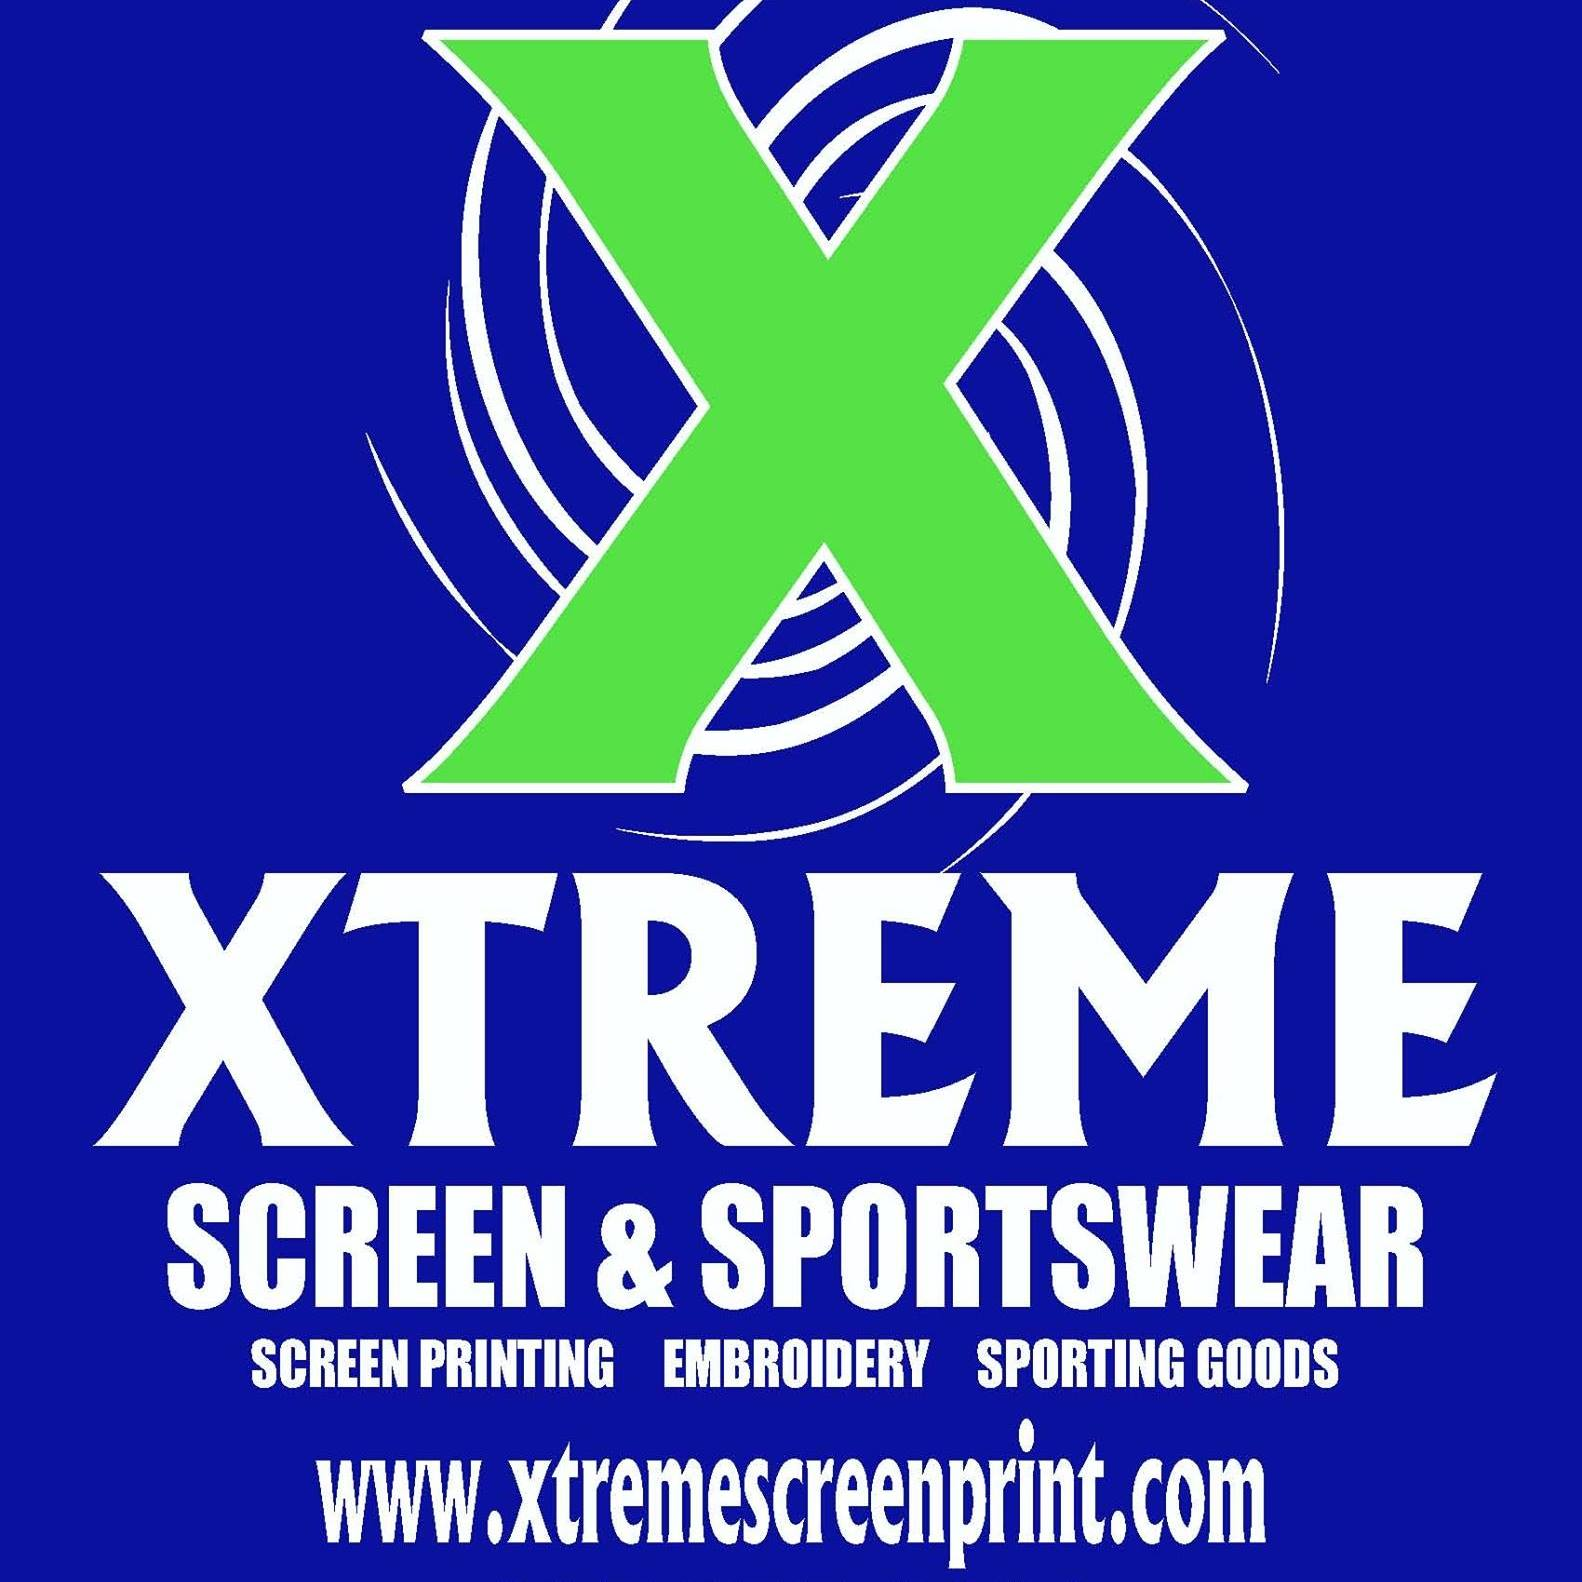 Xtreme Screen Print & Sportswear